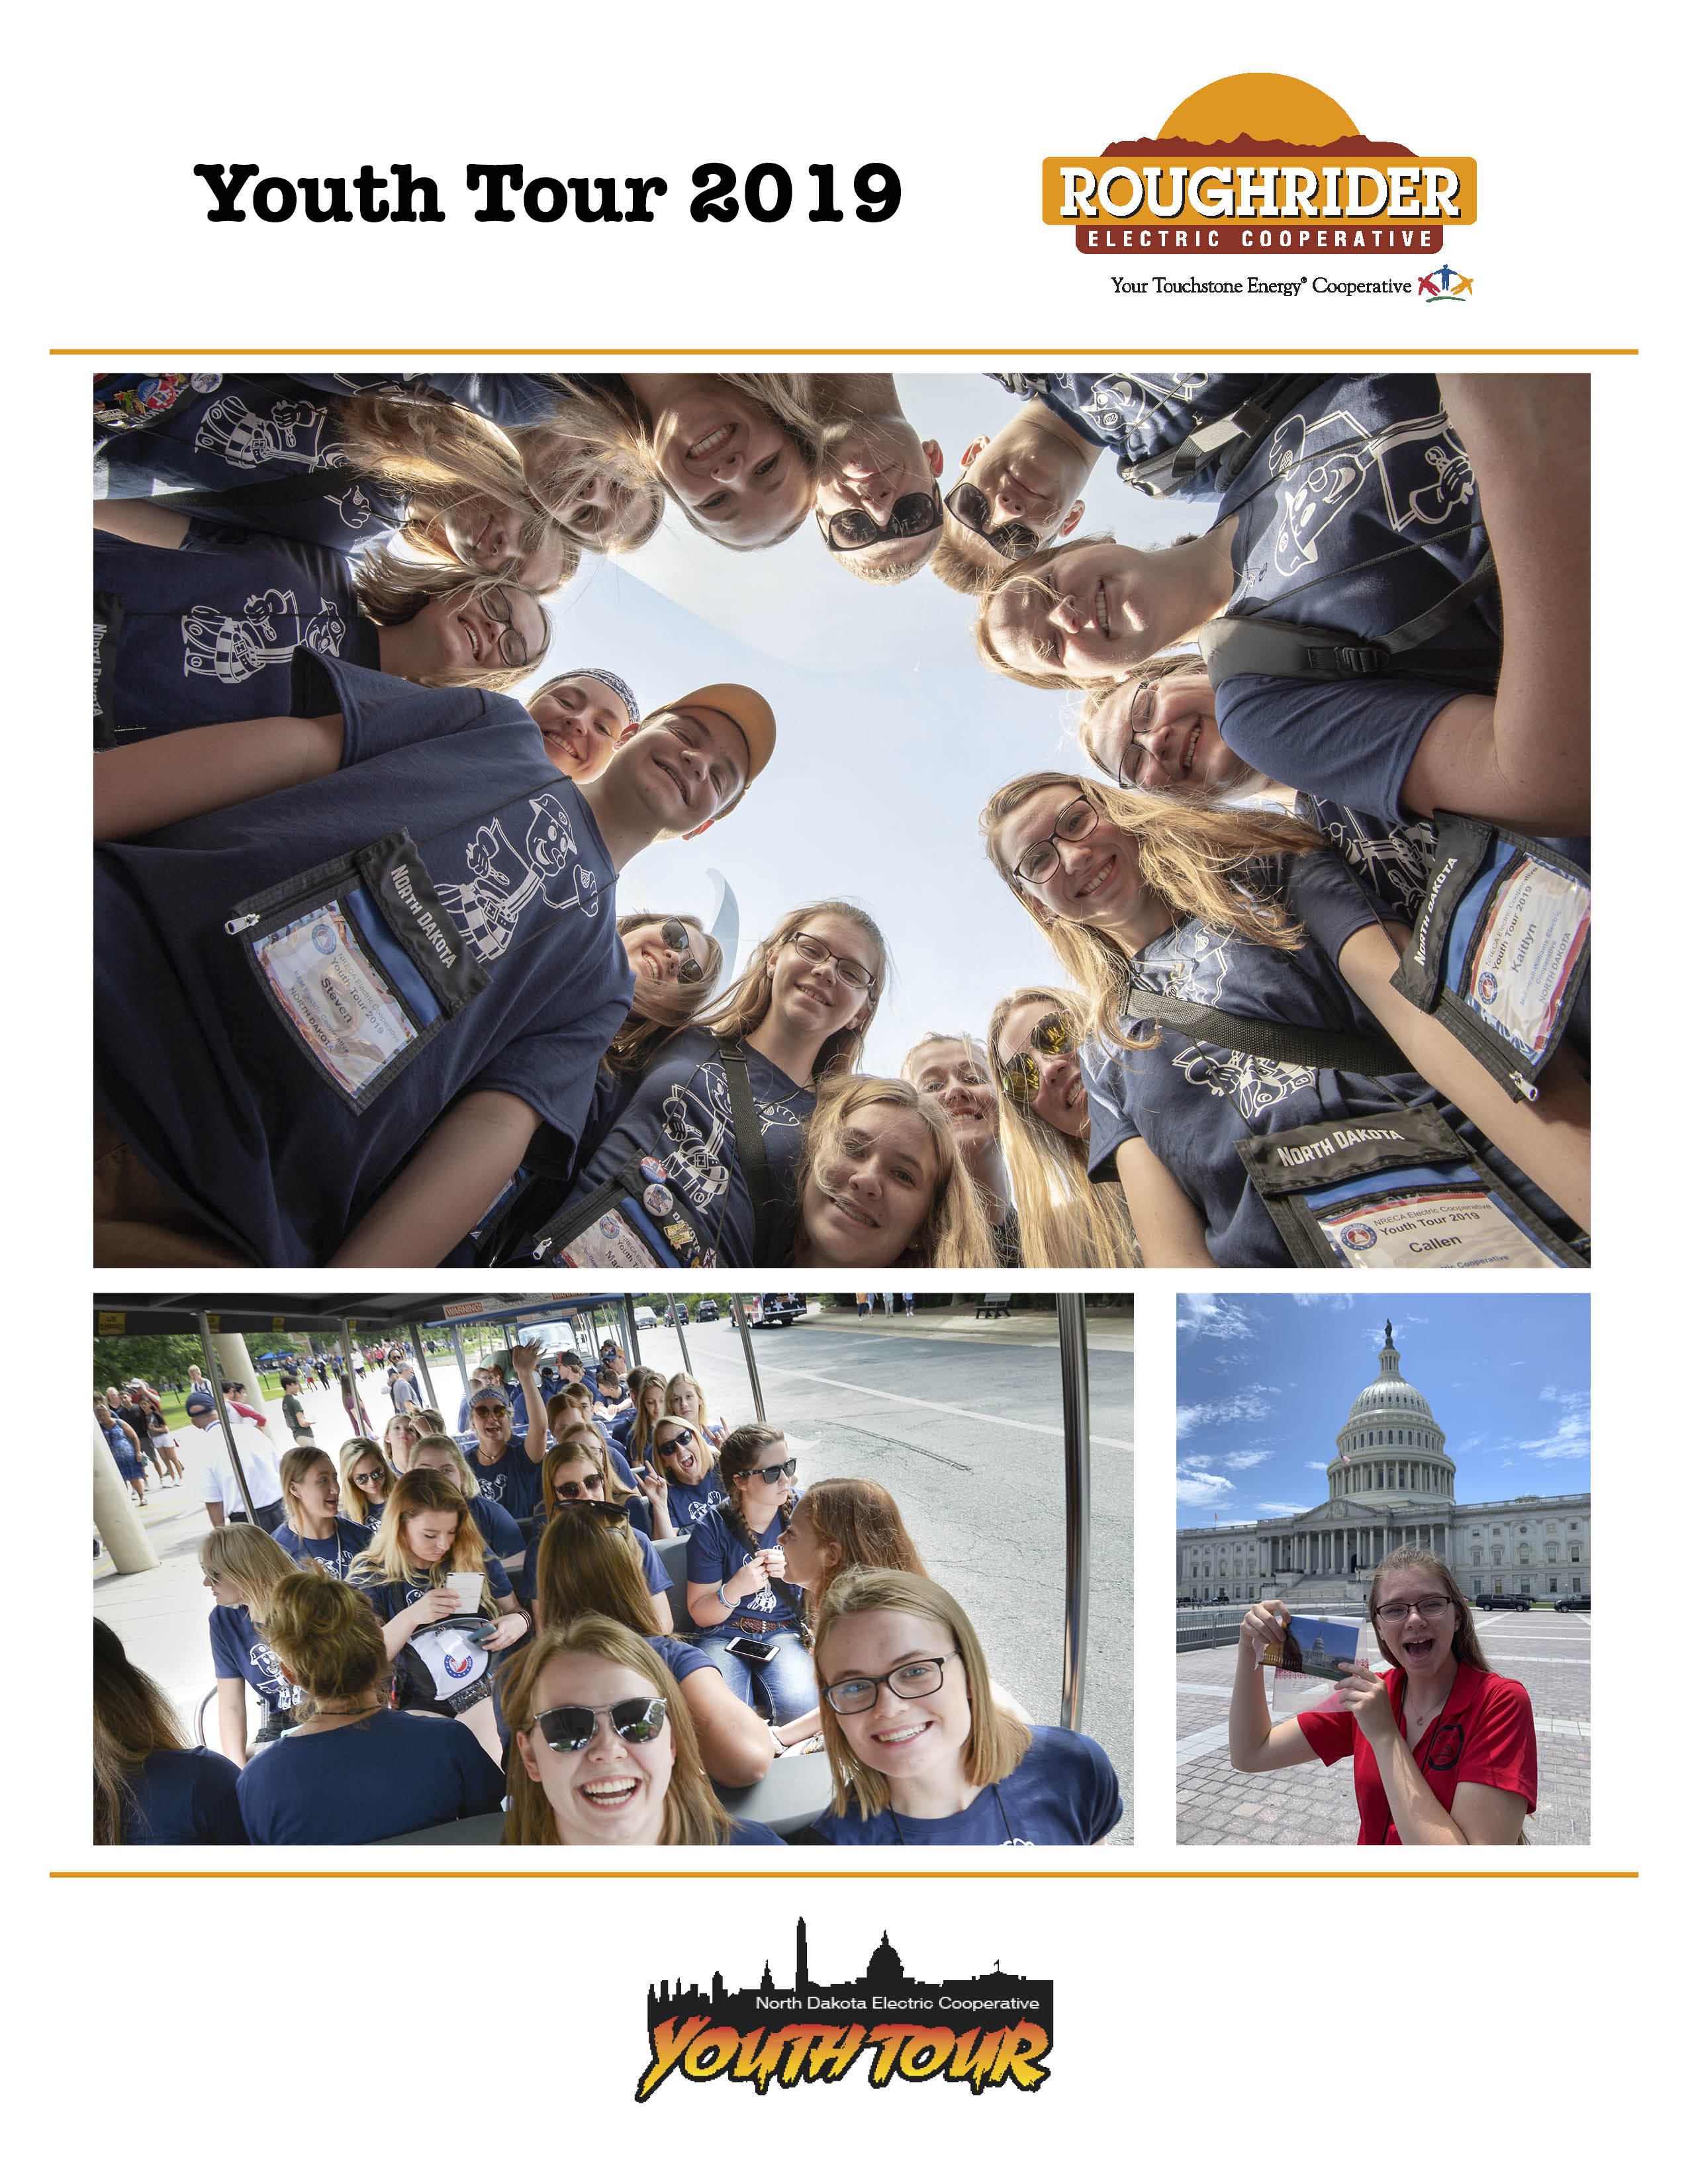 Youth Tour 2019 Photo Gallery Cover.jpg